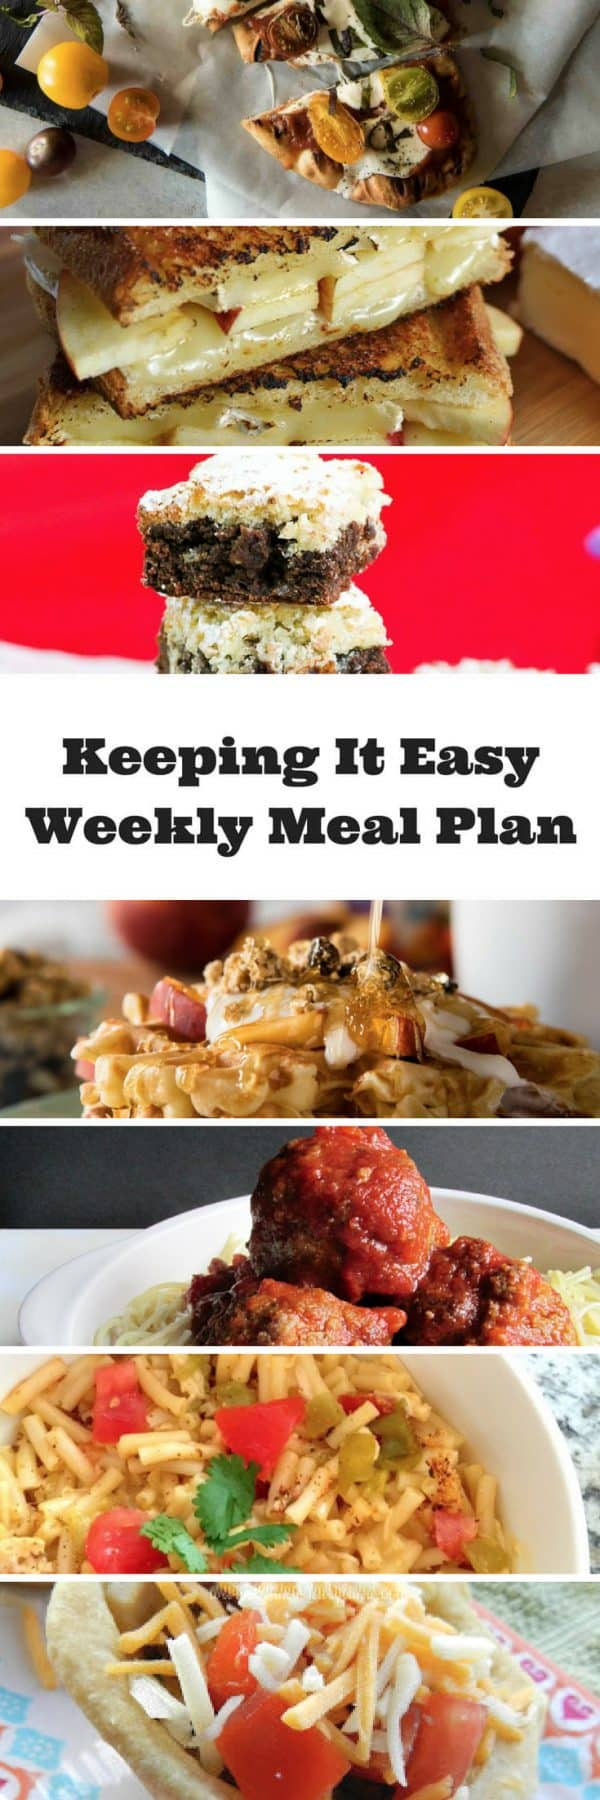 Easy Weekly Meal Plan #34 from My Fearless Kitchen. This week's meal plan includes Peach Cobbler Waffles, Grilled Margherita Flatbread, Apple & Brie Grilled Cheese, Easy Messy Meatballs, Southwestern Mac & Cheese, Mini Taco Pies, and Chocolate Coconut Brownies.